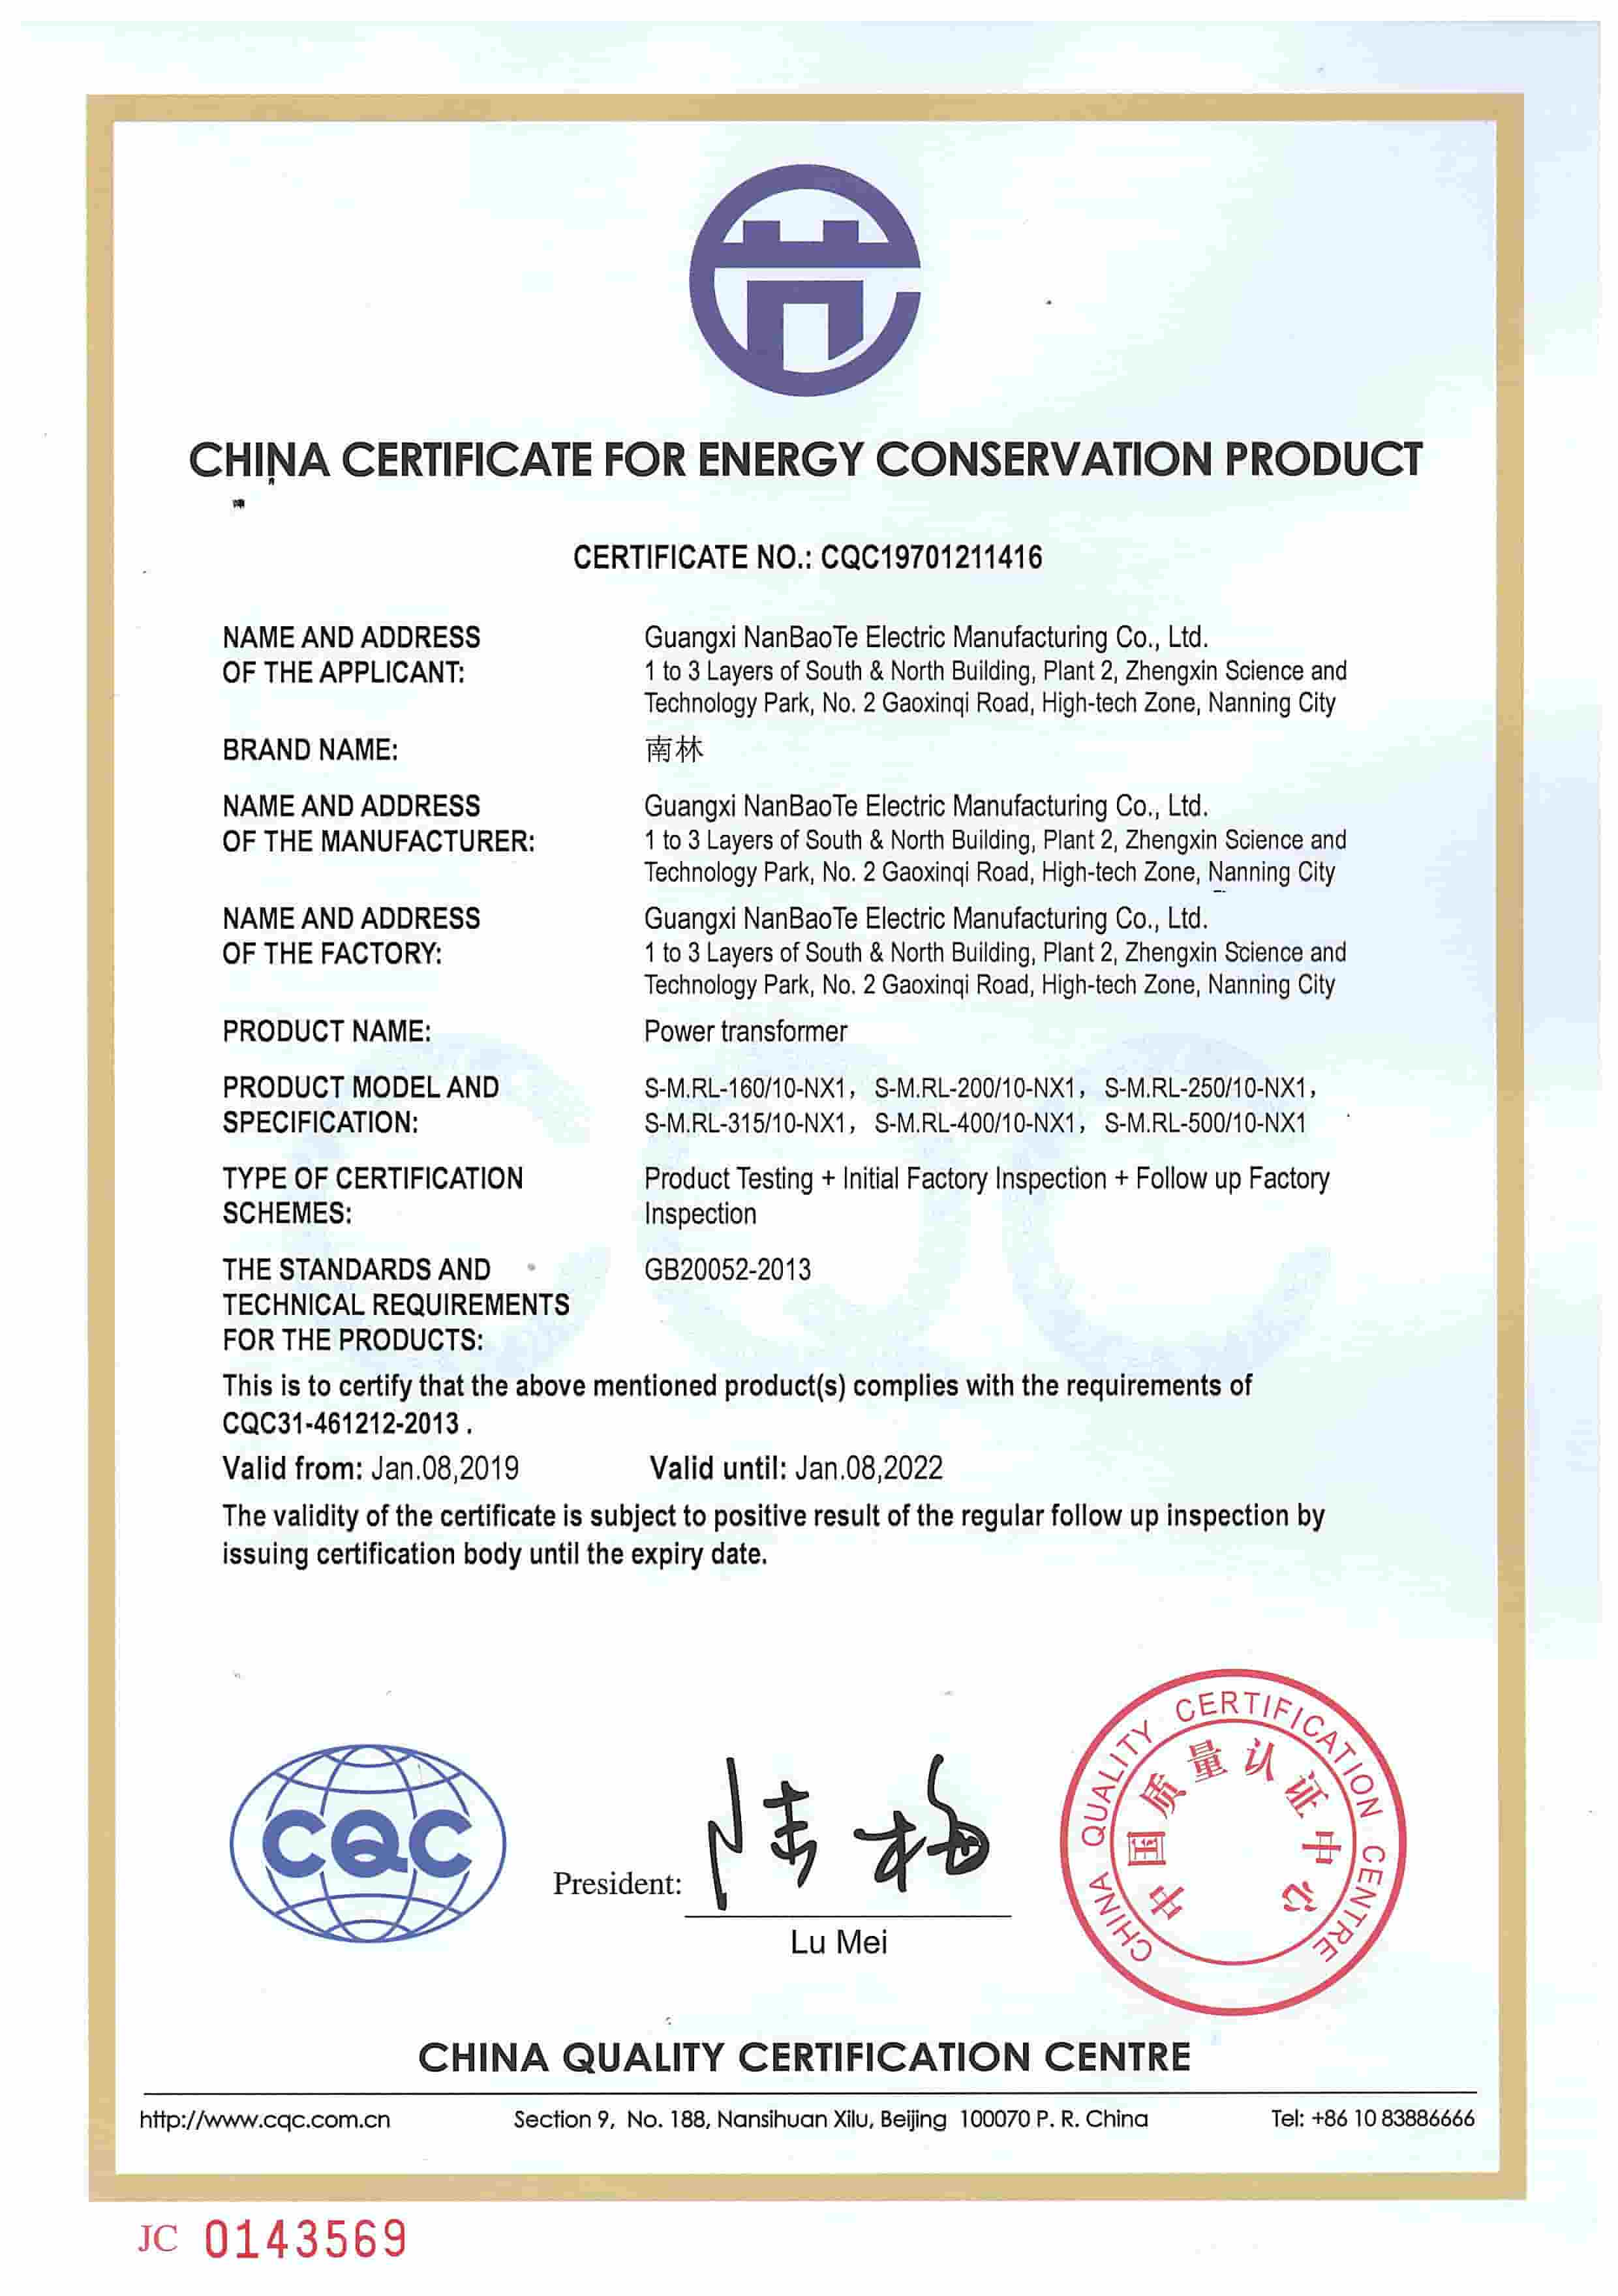 Three-dimensional Triangular Coiled Iron Core Oil-immersed Transformer Energy Conservation Product Certificate